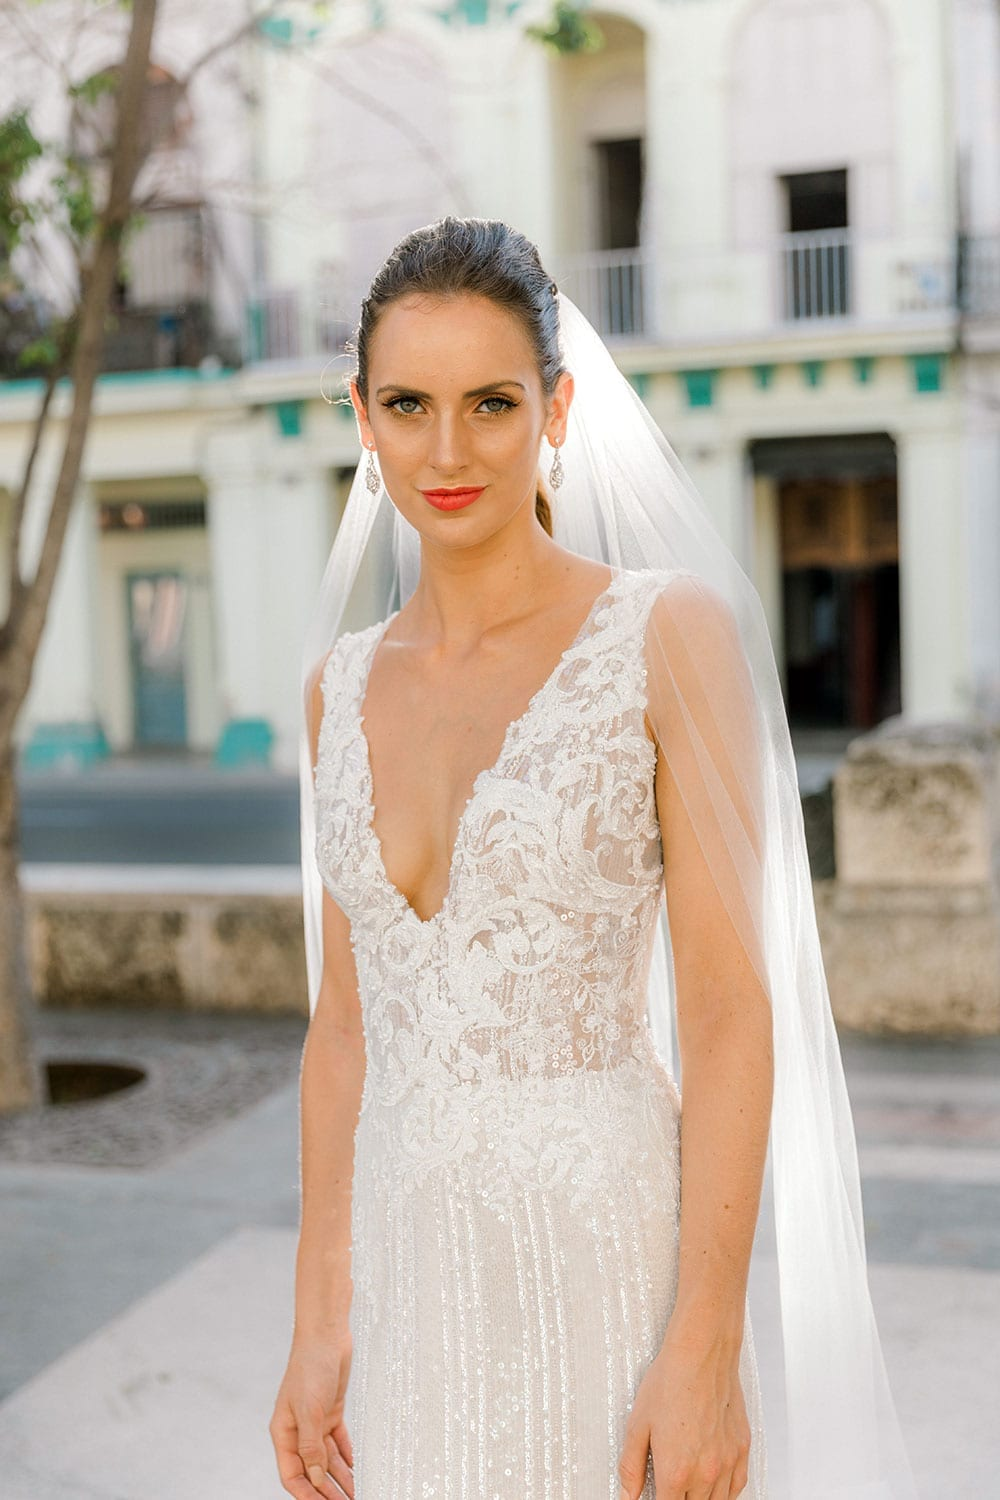 Model wearing Vinka Design Natalia Wedding Dress, a V-Neck Beaded Lace Wedding Gown close up showing v neck and complimented with veil in Cuba